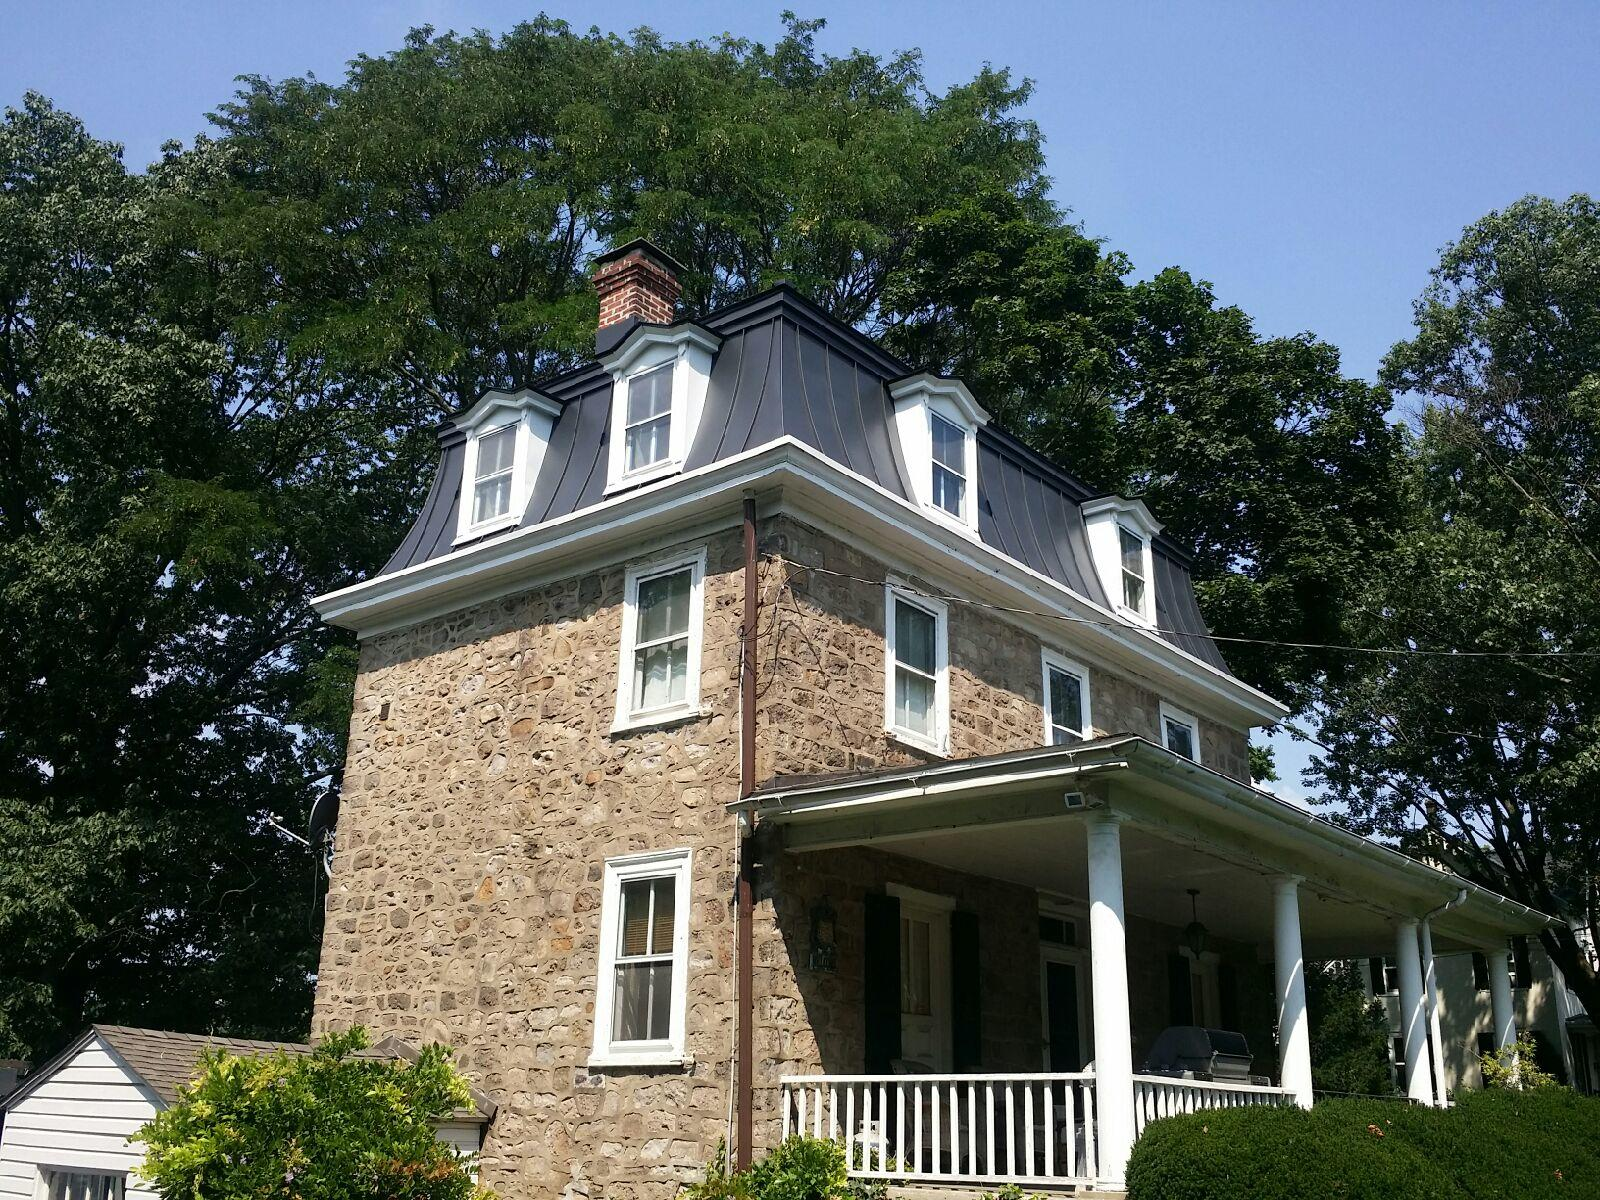 Dove and Charcoal Grey GTech Standing Seam Metal Roof Installation in Glenside, PA - After Photo